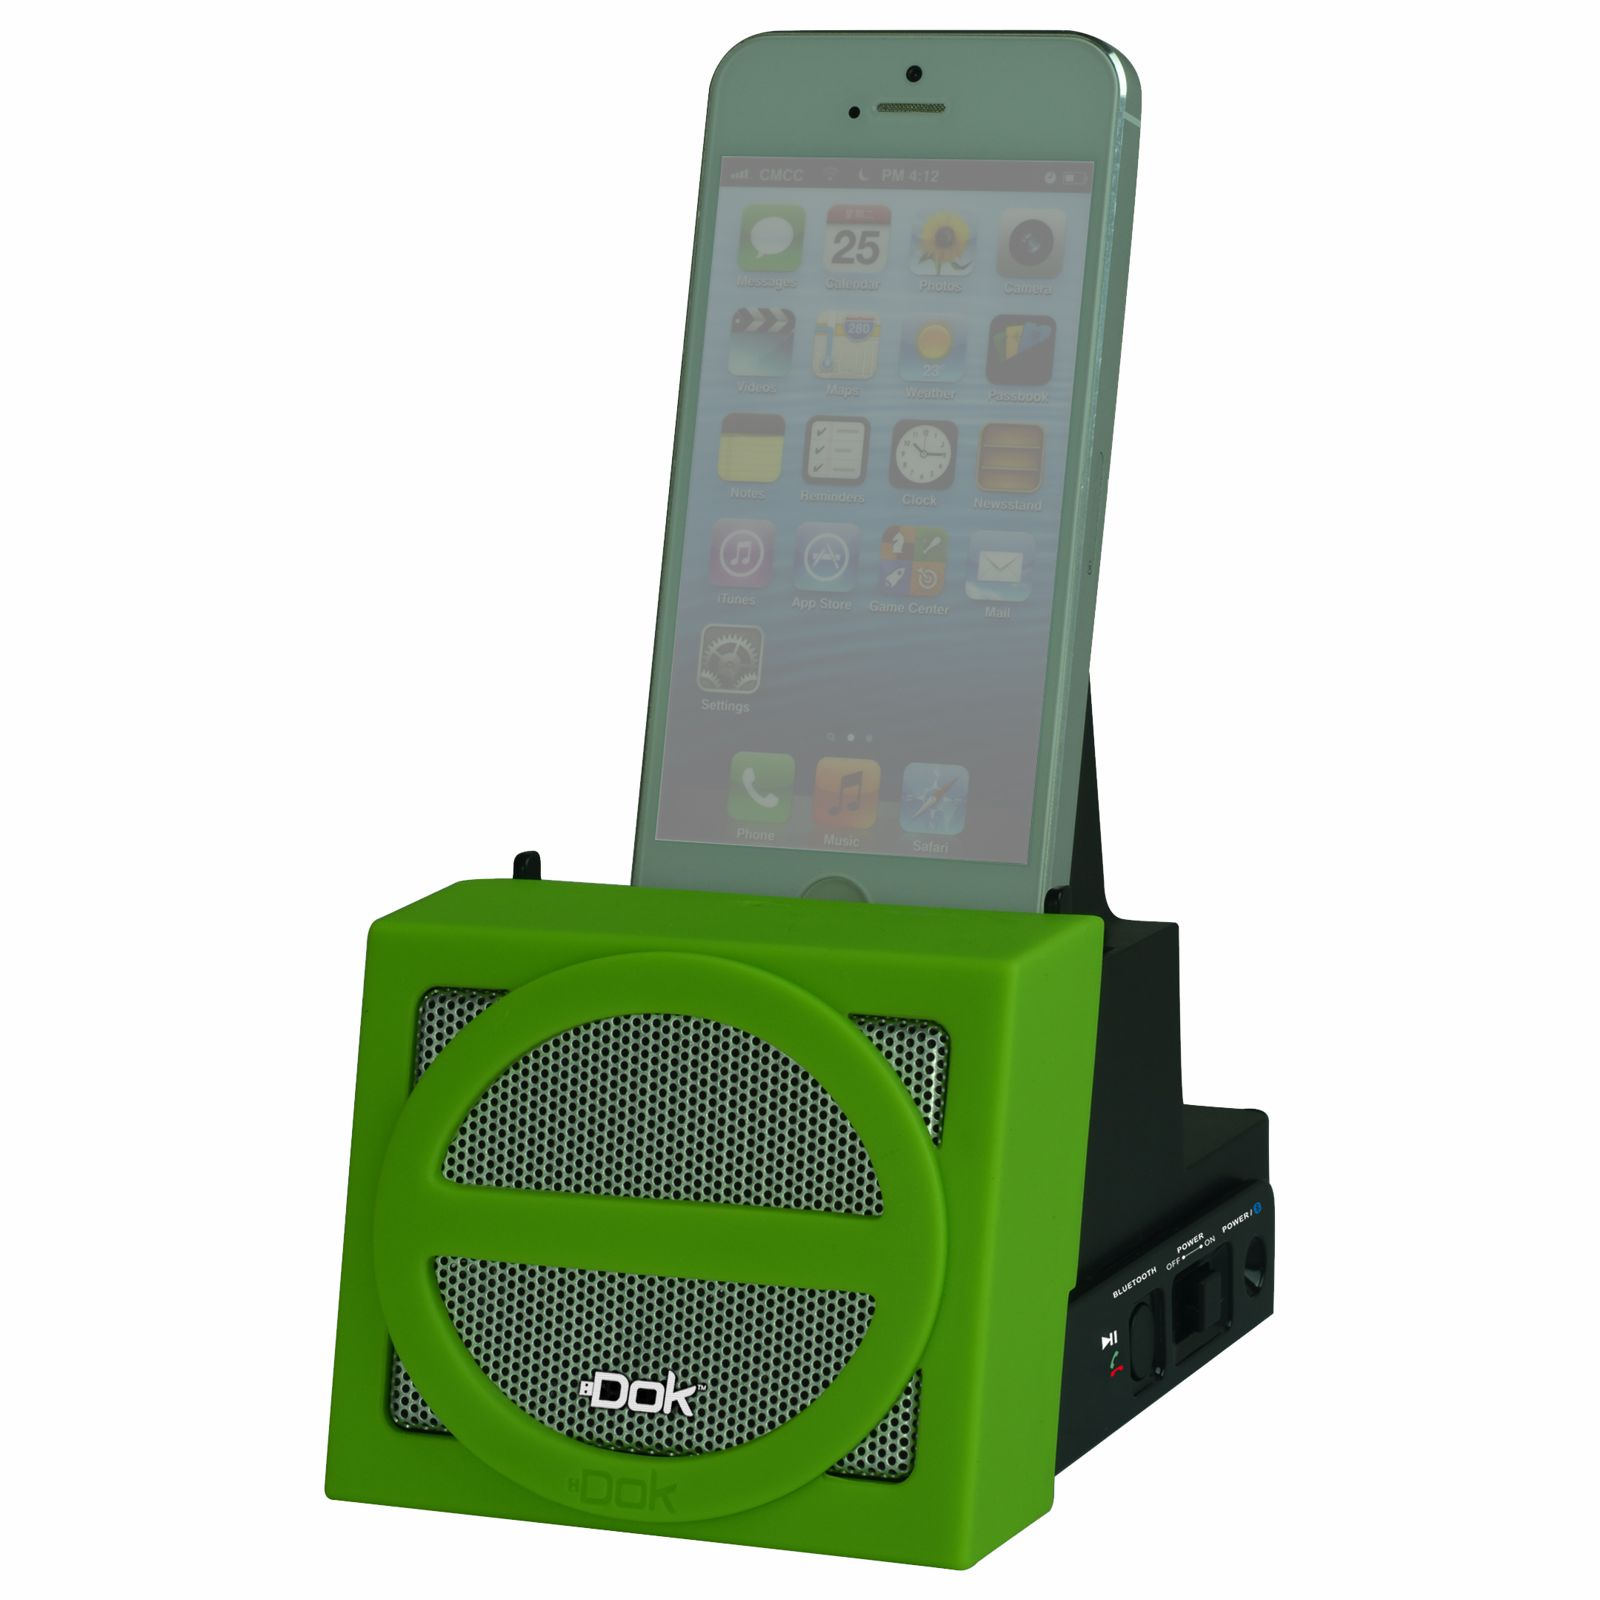 CR12GN - Portable Universal Cradle with Speaker System (Bluetooth), Rechargeable Battery (Green Face)